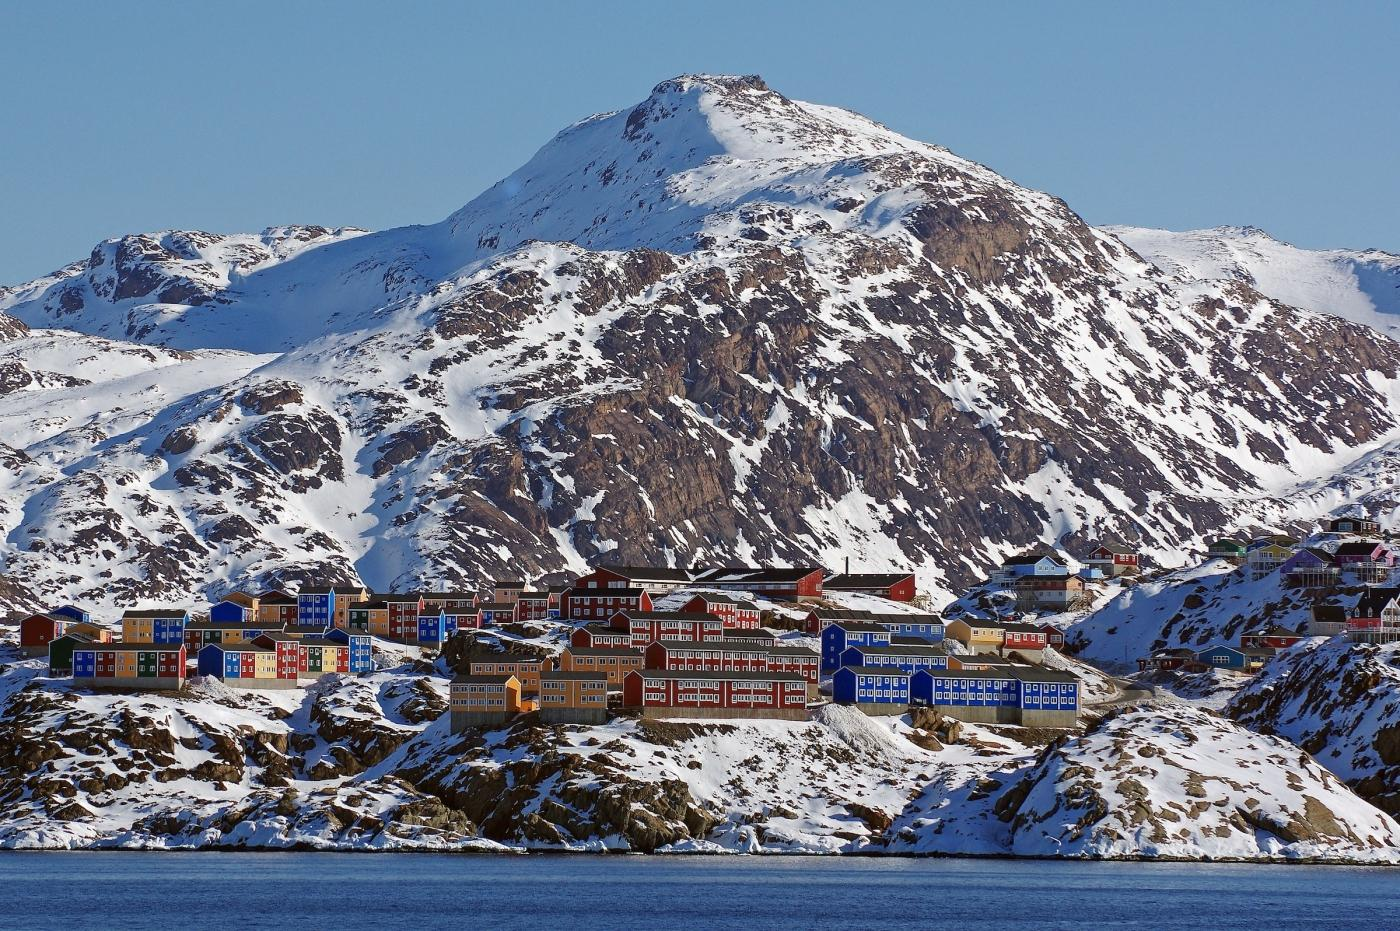 Colourful houses stand out against the winter landscape in Sisimiut, Destination Arctic Circle. Photo by Reinhard Pantke - Visit Greenland.